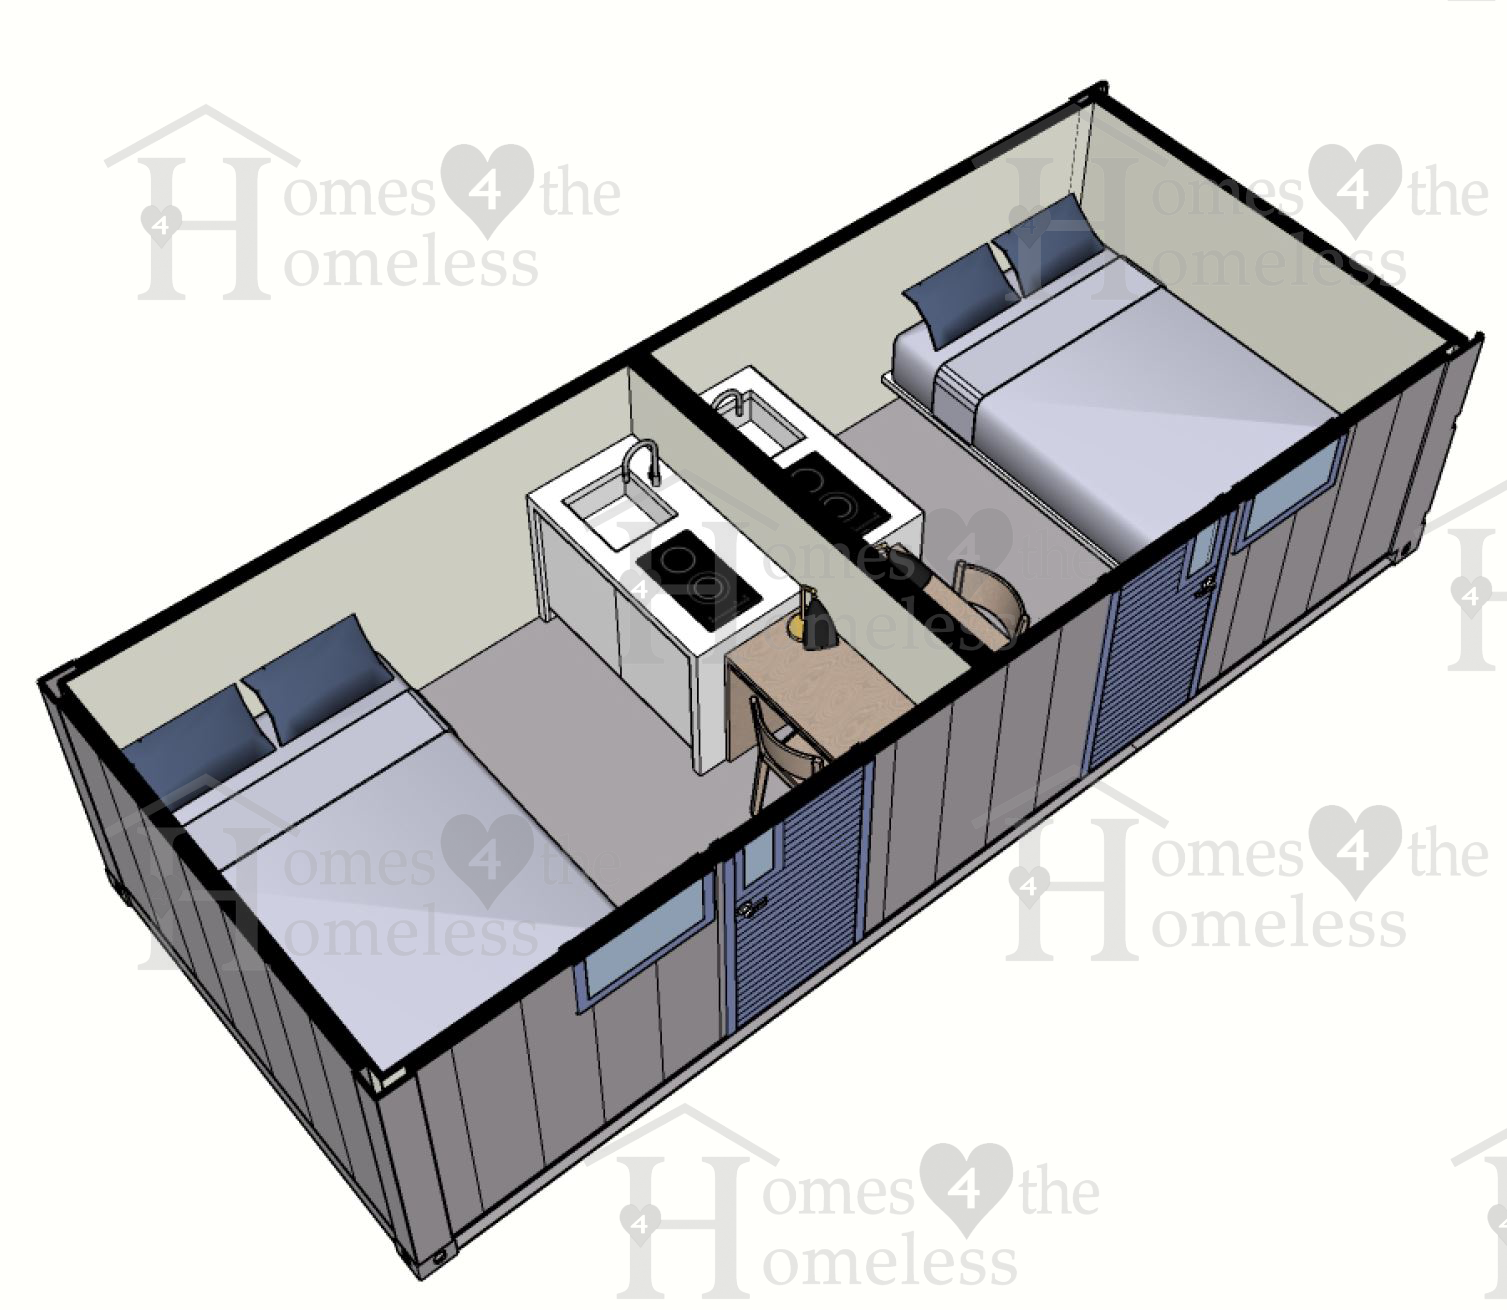 Type 3 shipping container tiny home 4 homeless